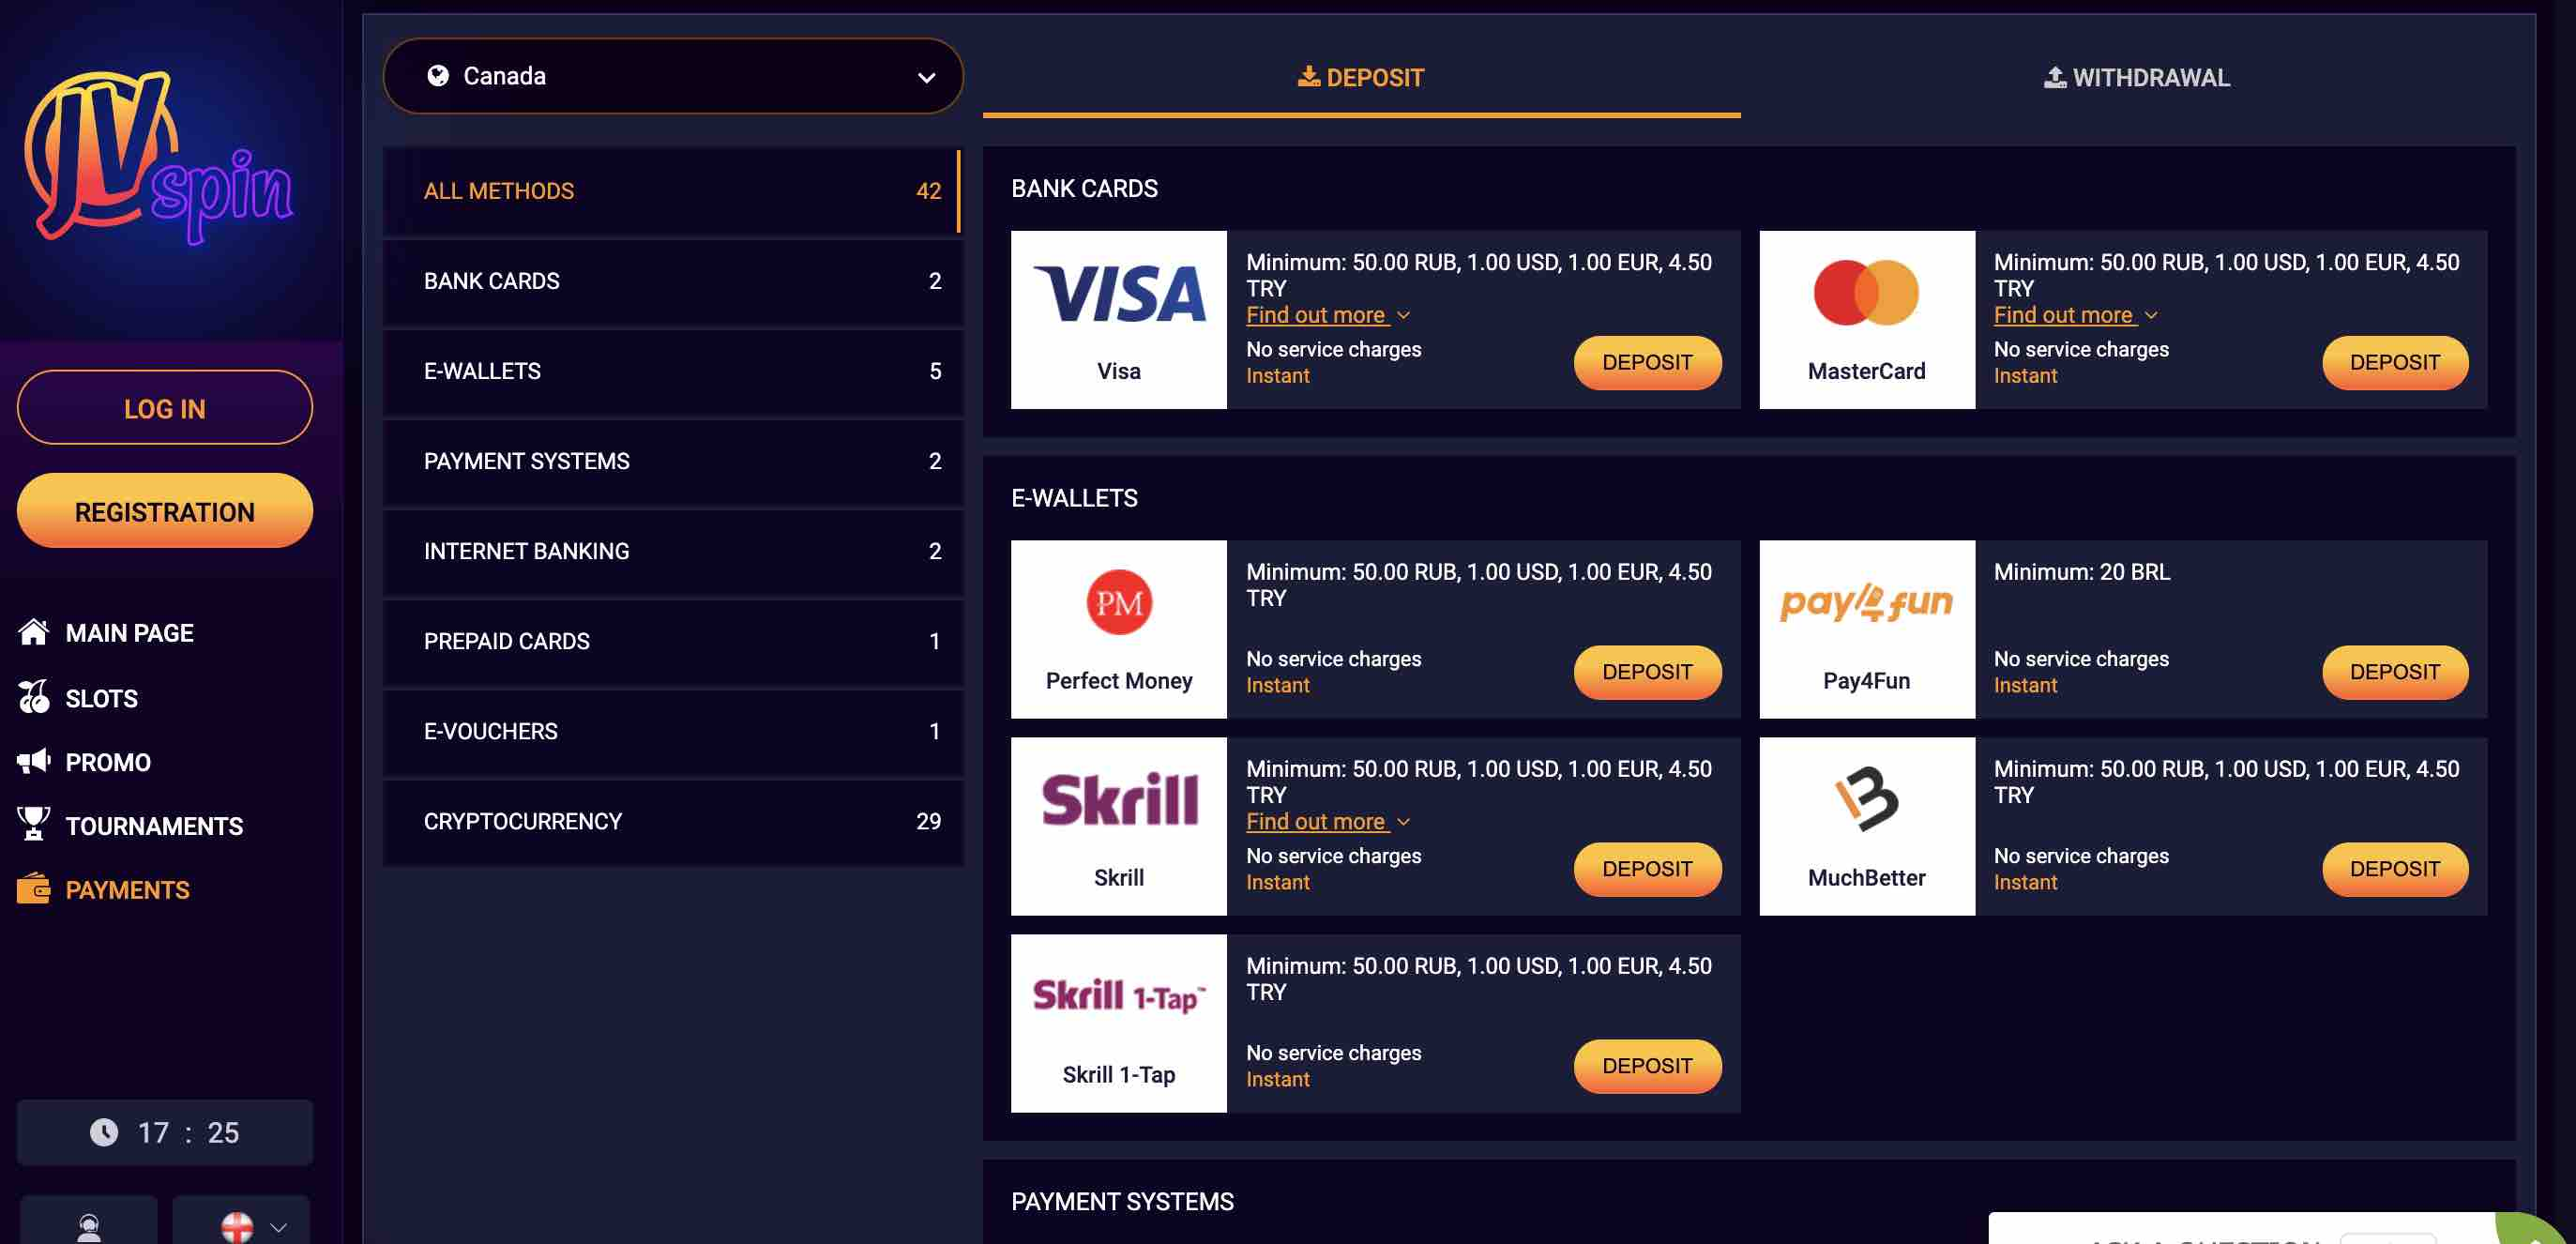 JV Spin Payment Options